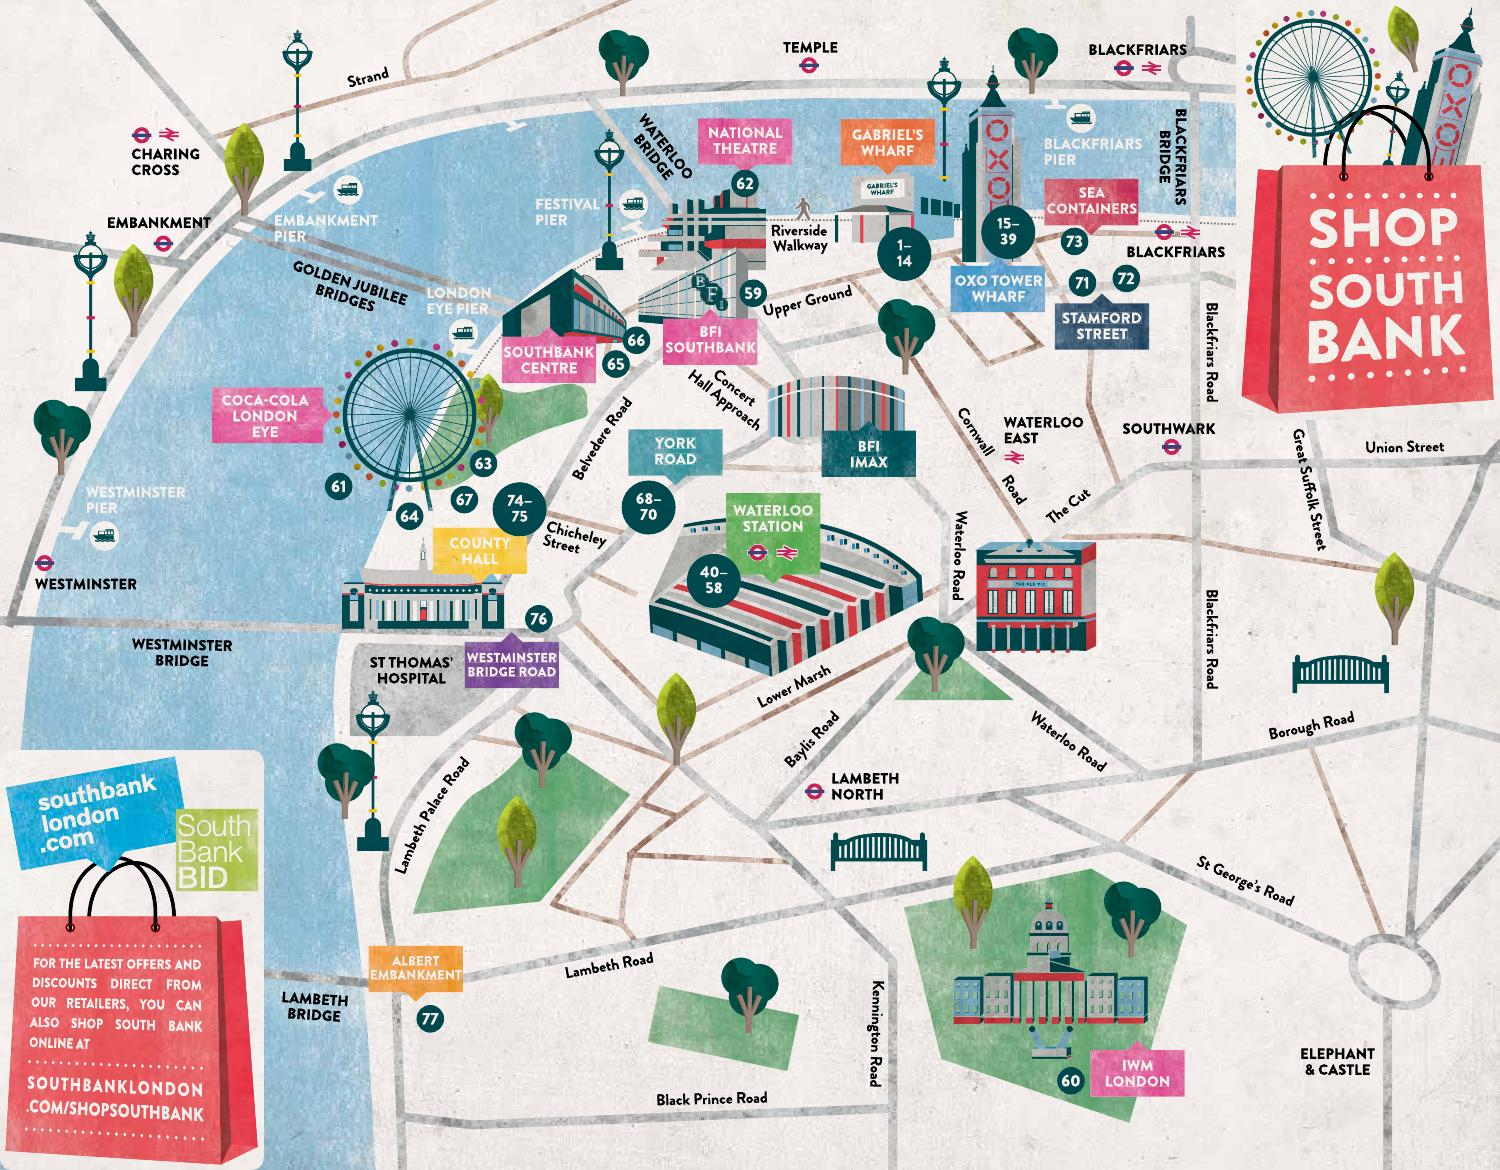 shop south bank map by south bank london issuu. Black Bedroom Furniture Sets. Home Design Ideas